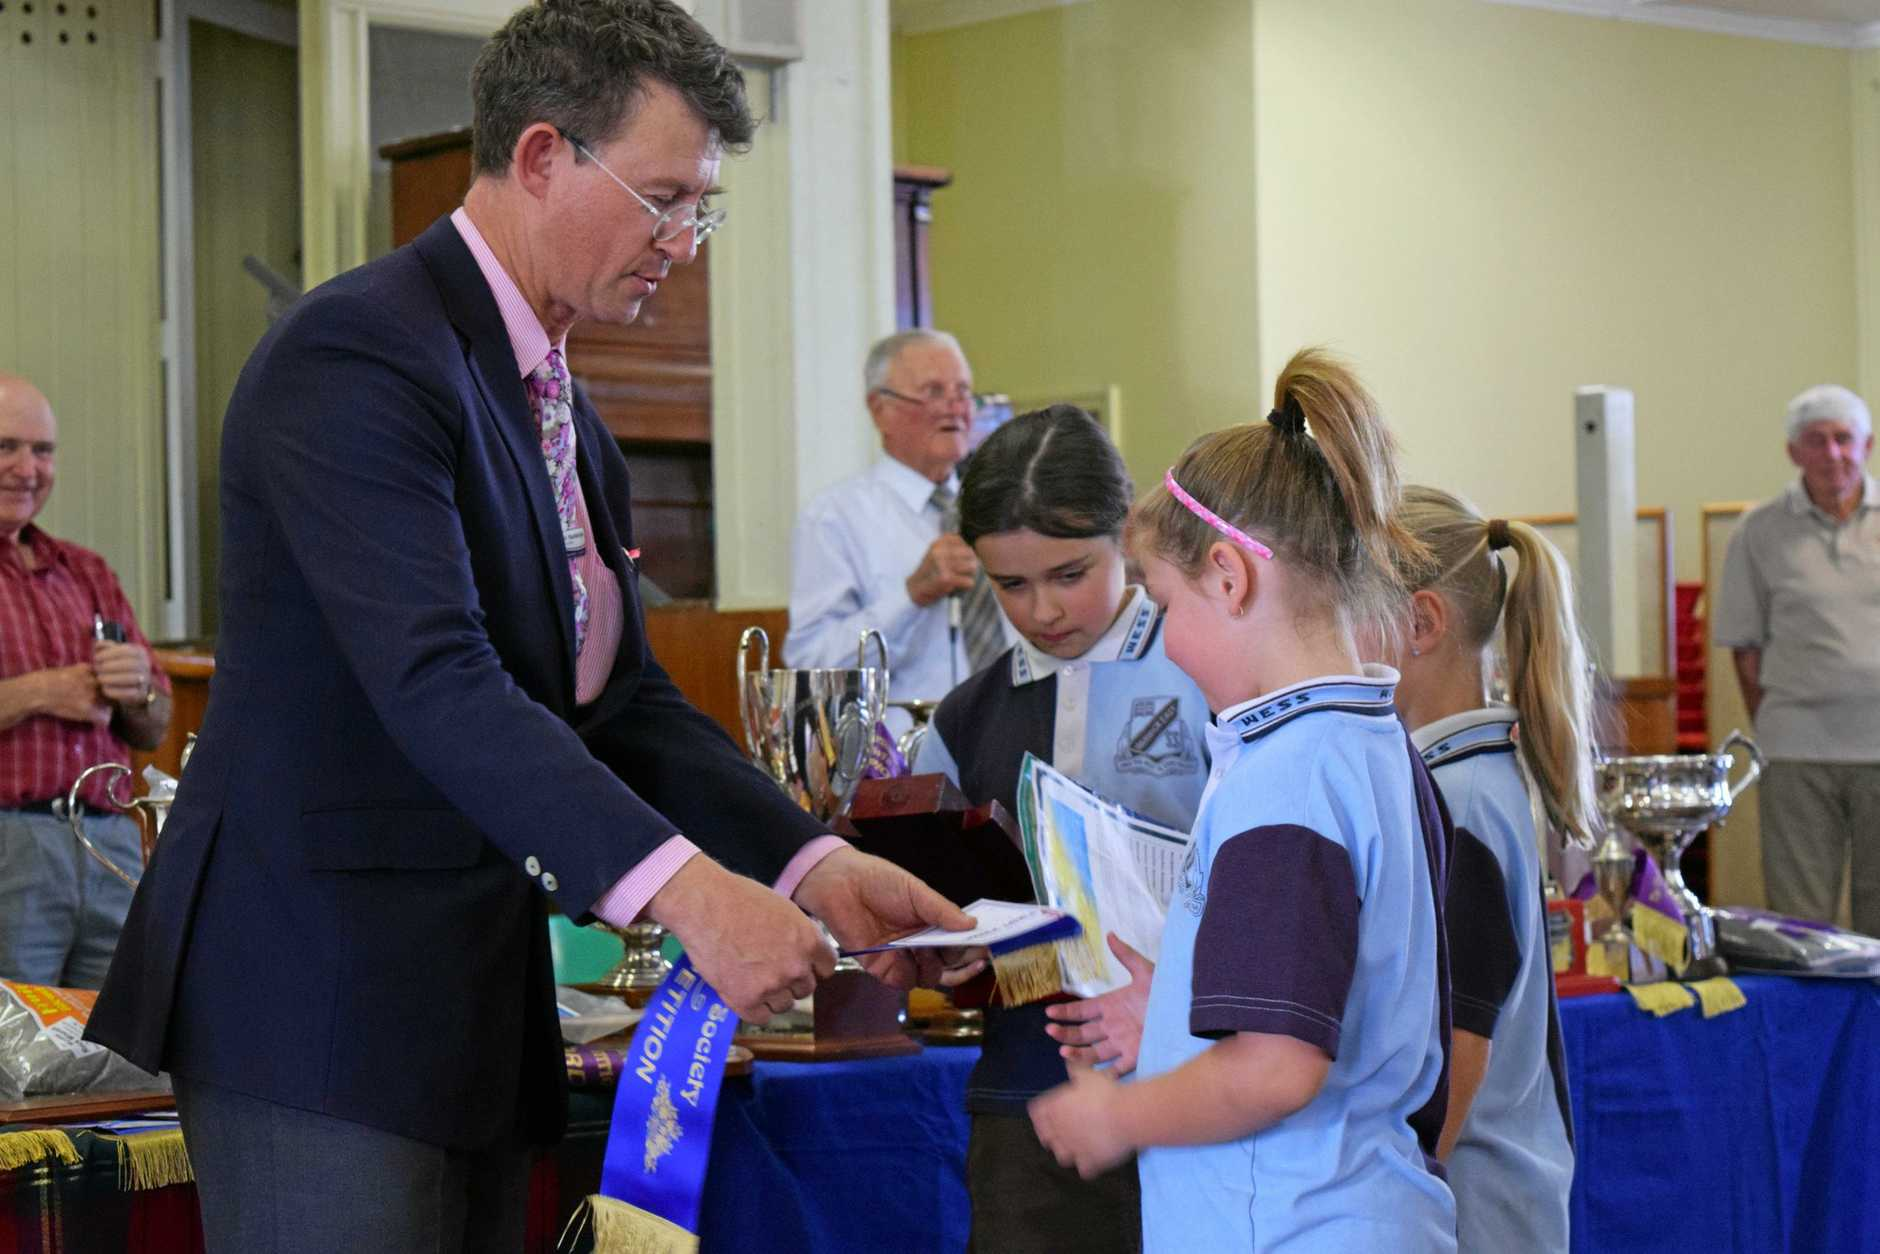 Students from Warwick East State School collect their garden awards from Councillor Jamie Mackenzie. Photo Paige Ashby / Warwick Daily News